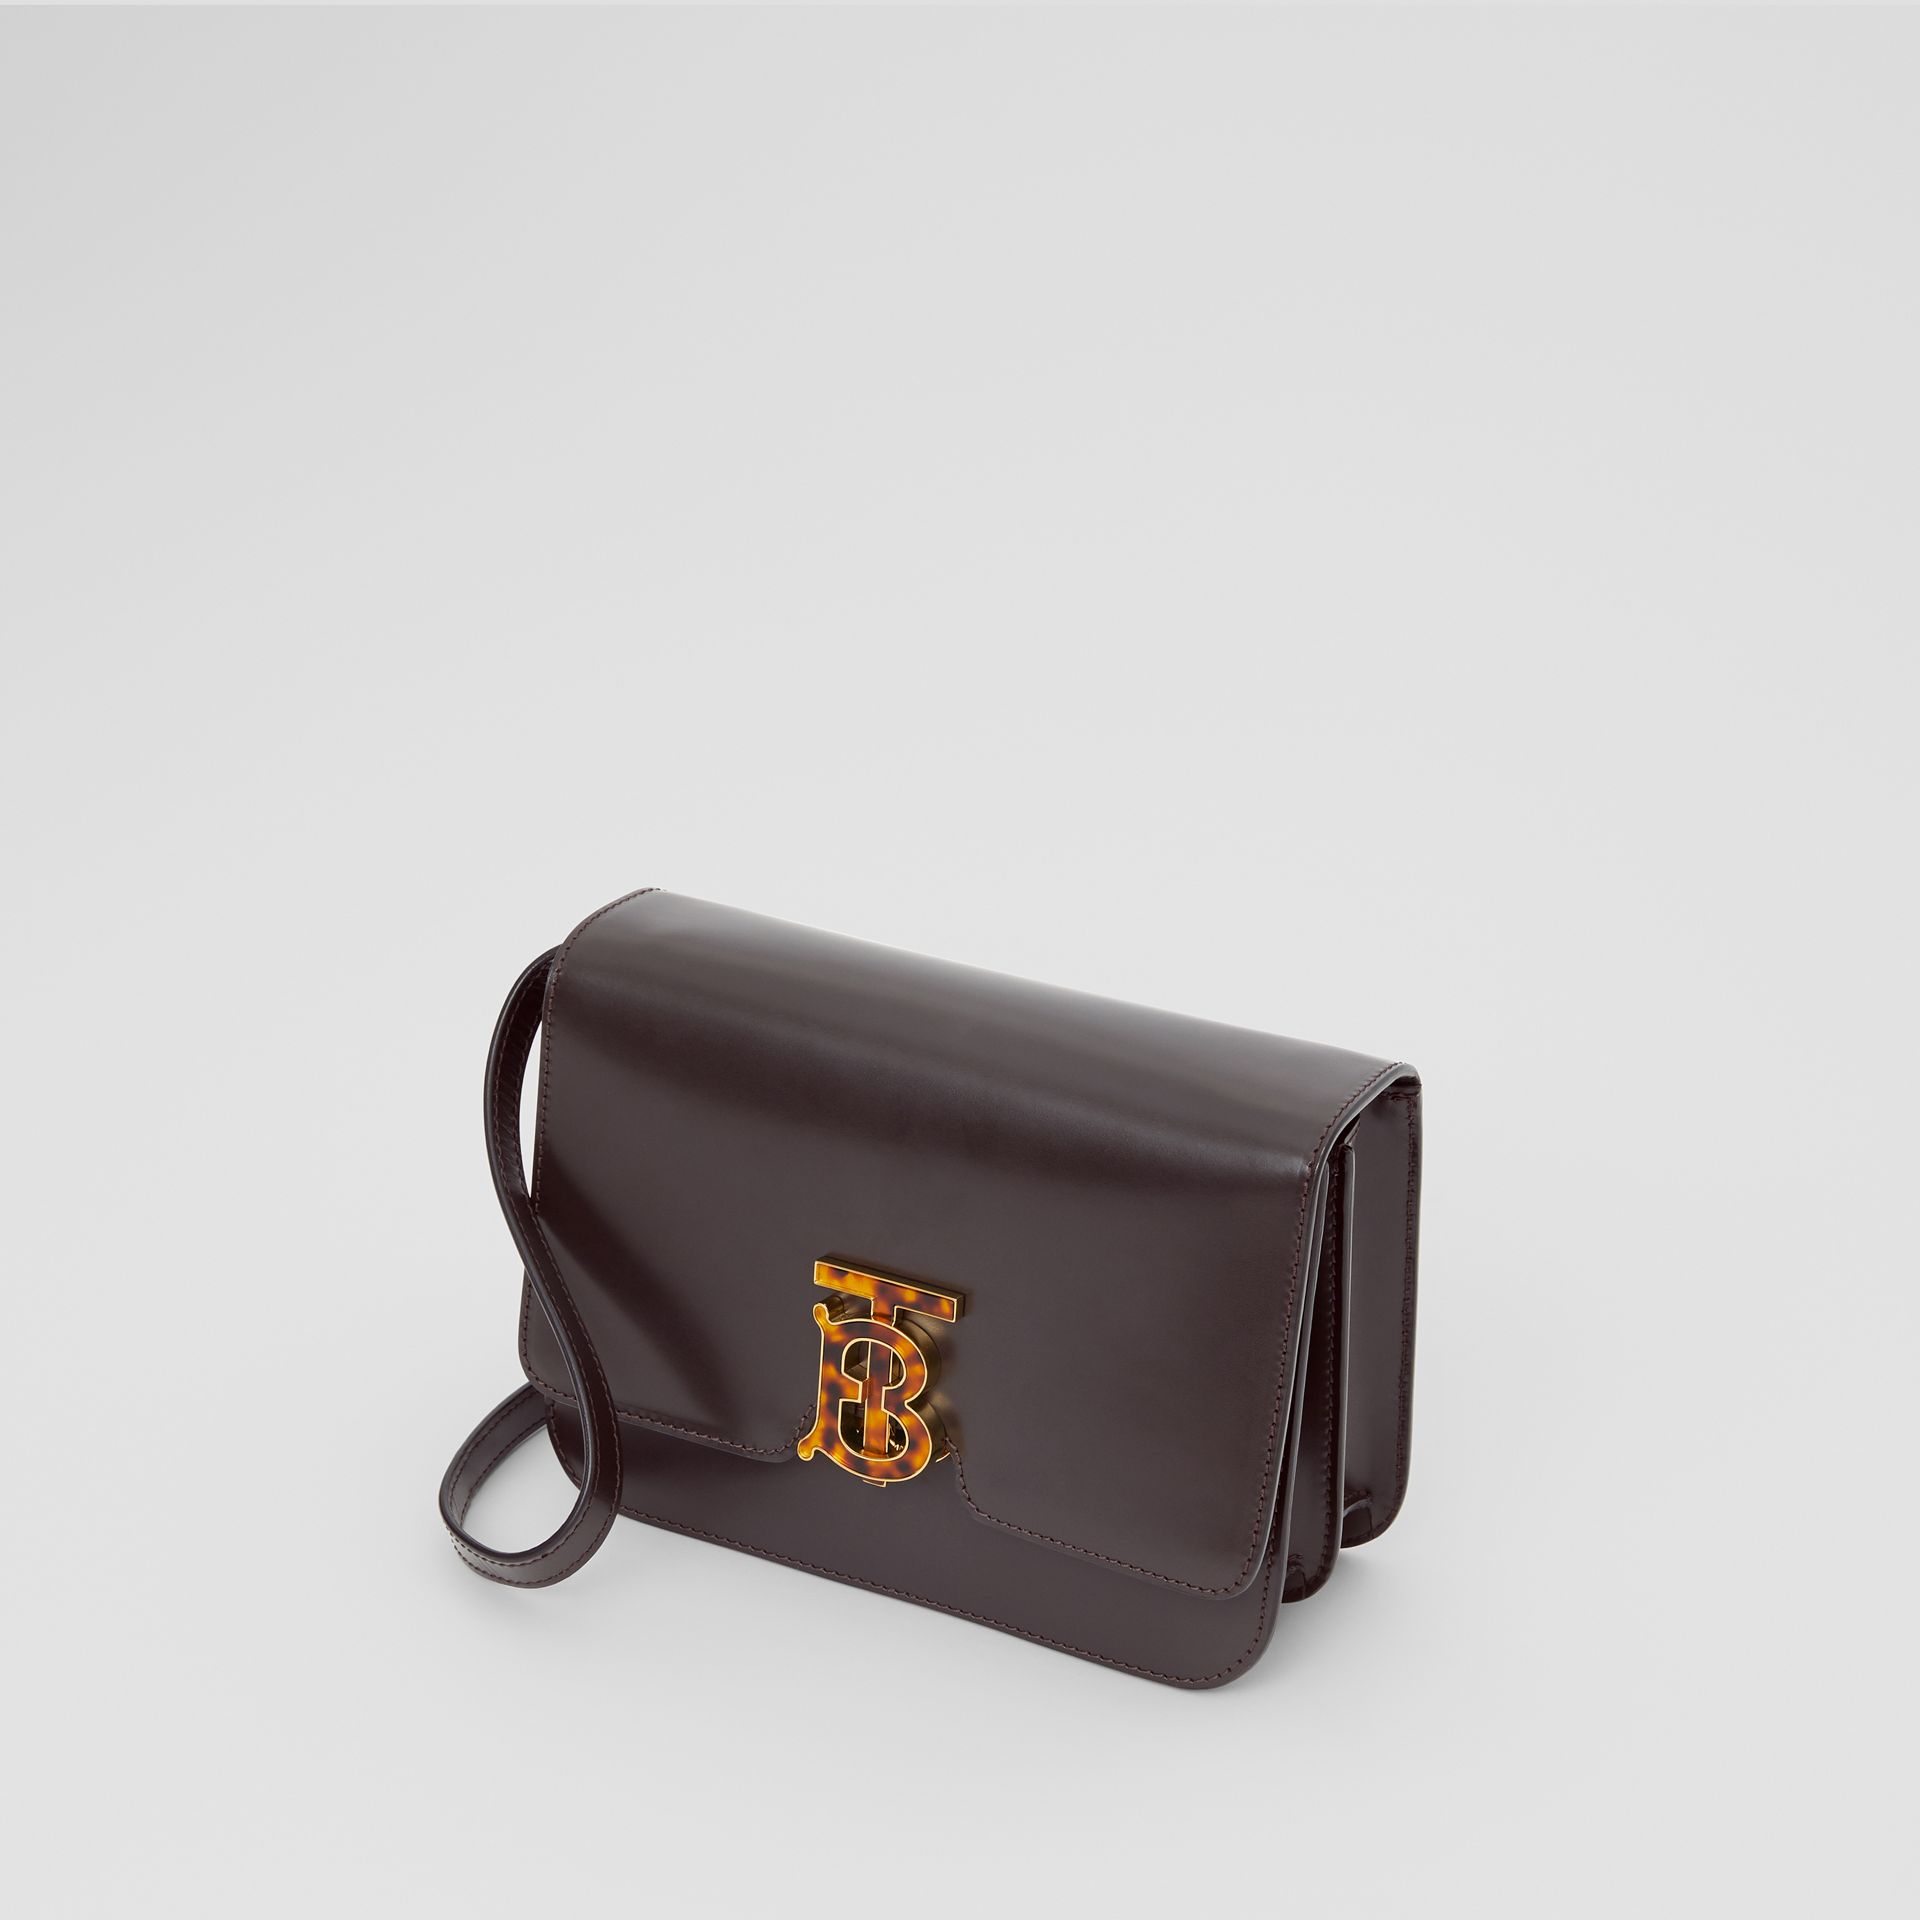 Small Leather TB Bag in Coffee - Women | Burberry Hong Kong - gallery image 3